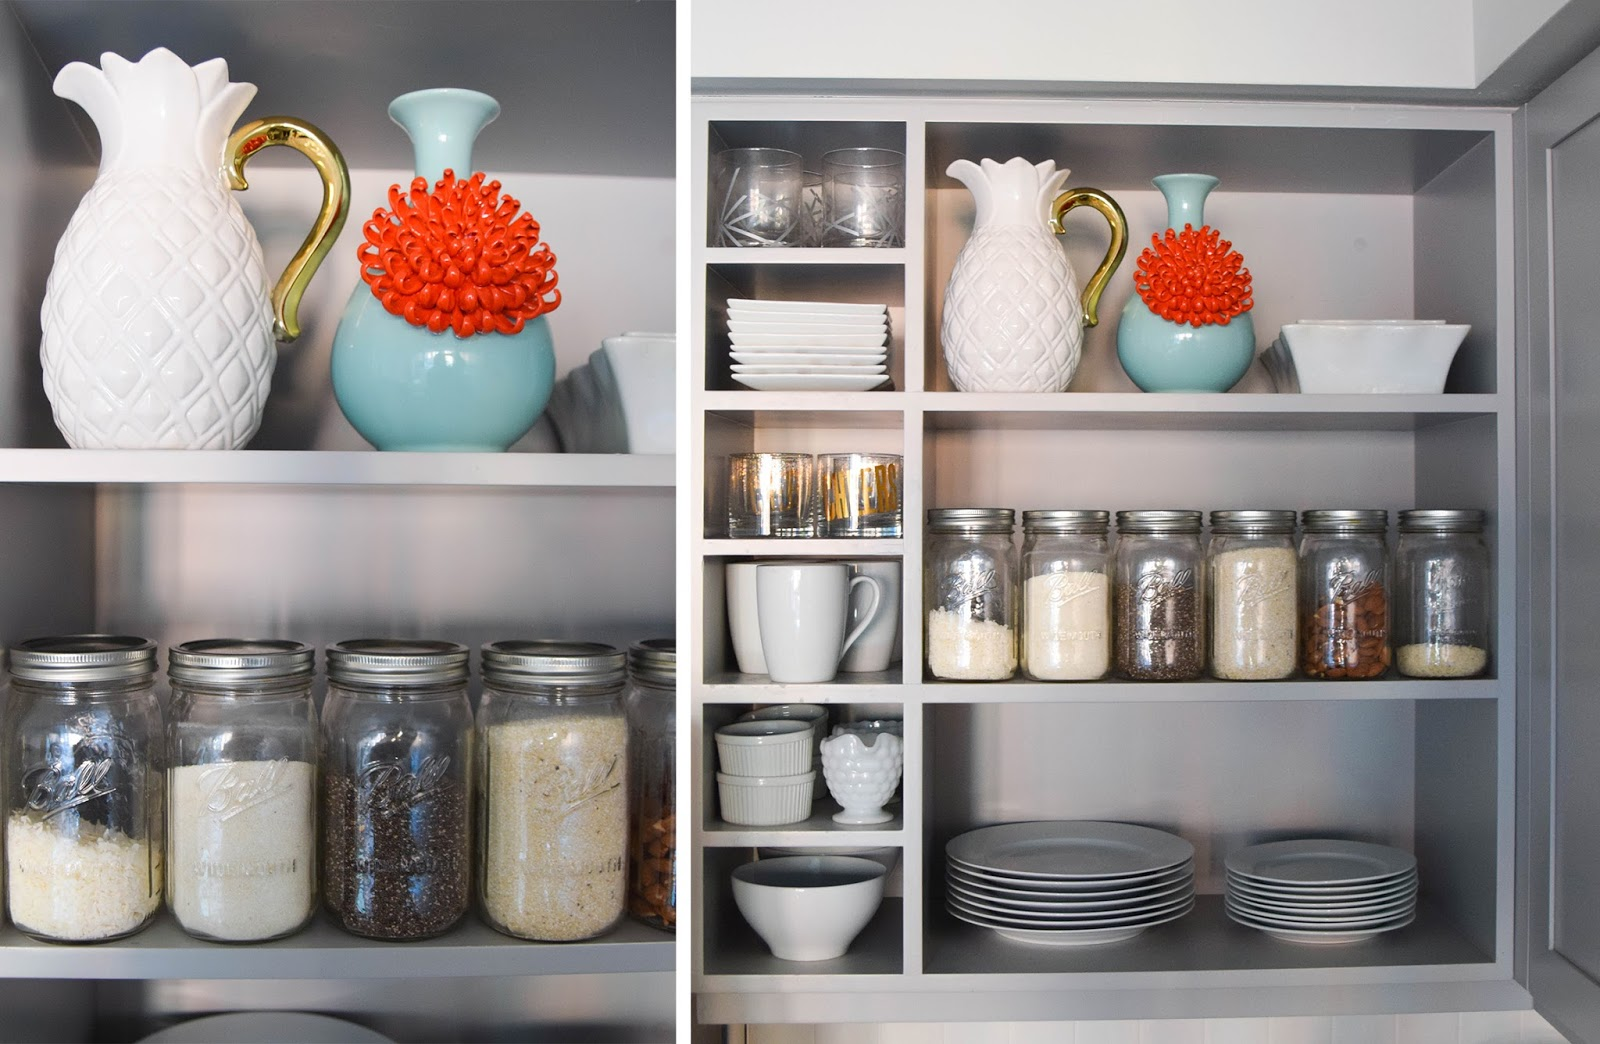 Open Shelving in the Kitchen: How to Style AND Stay Organized